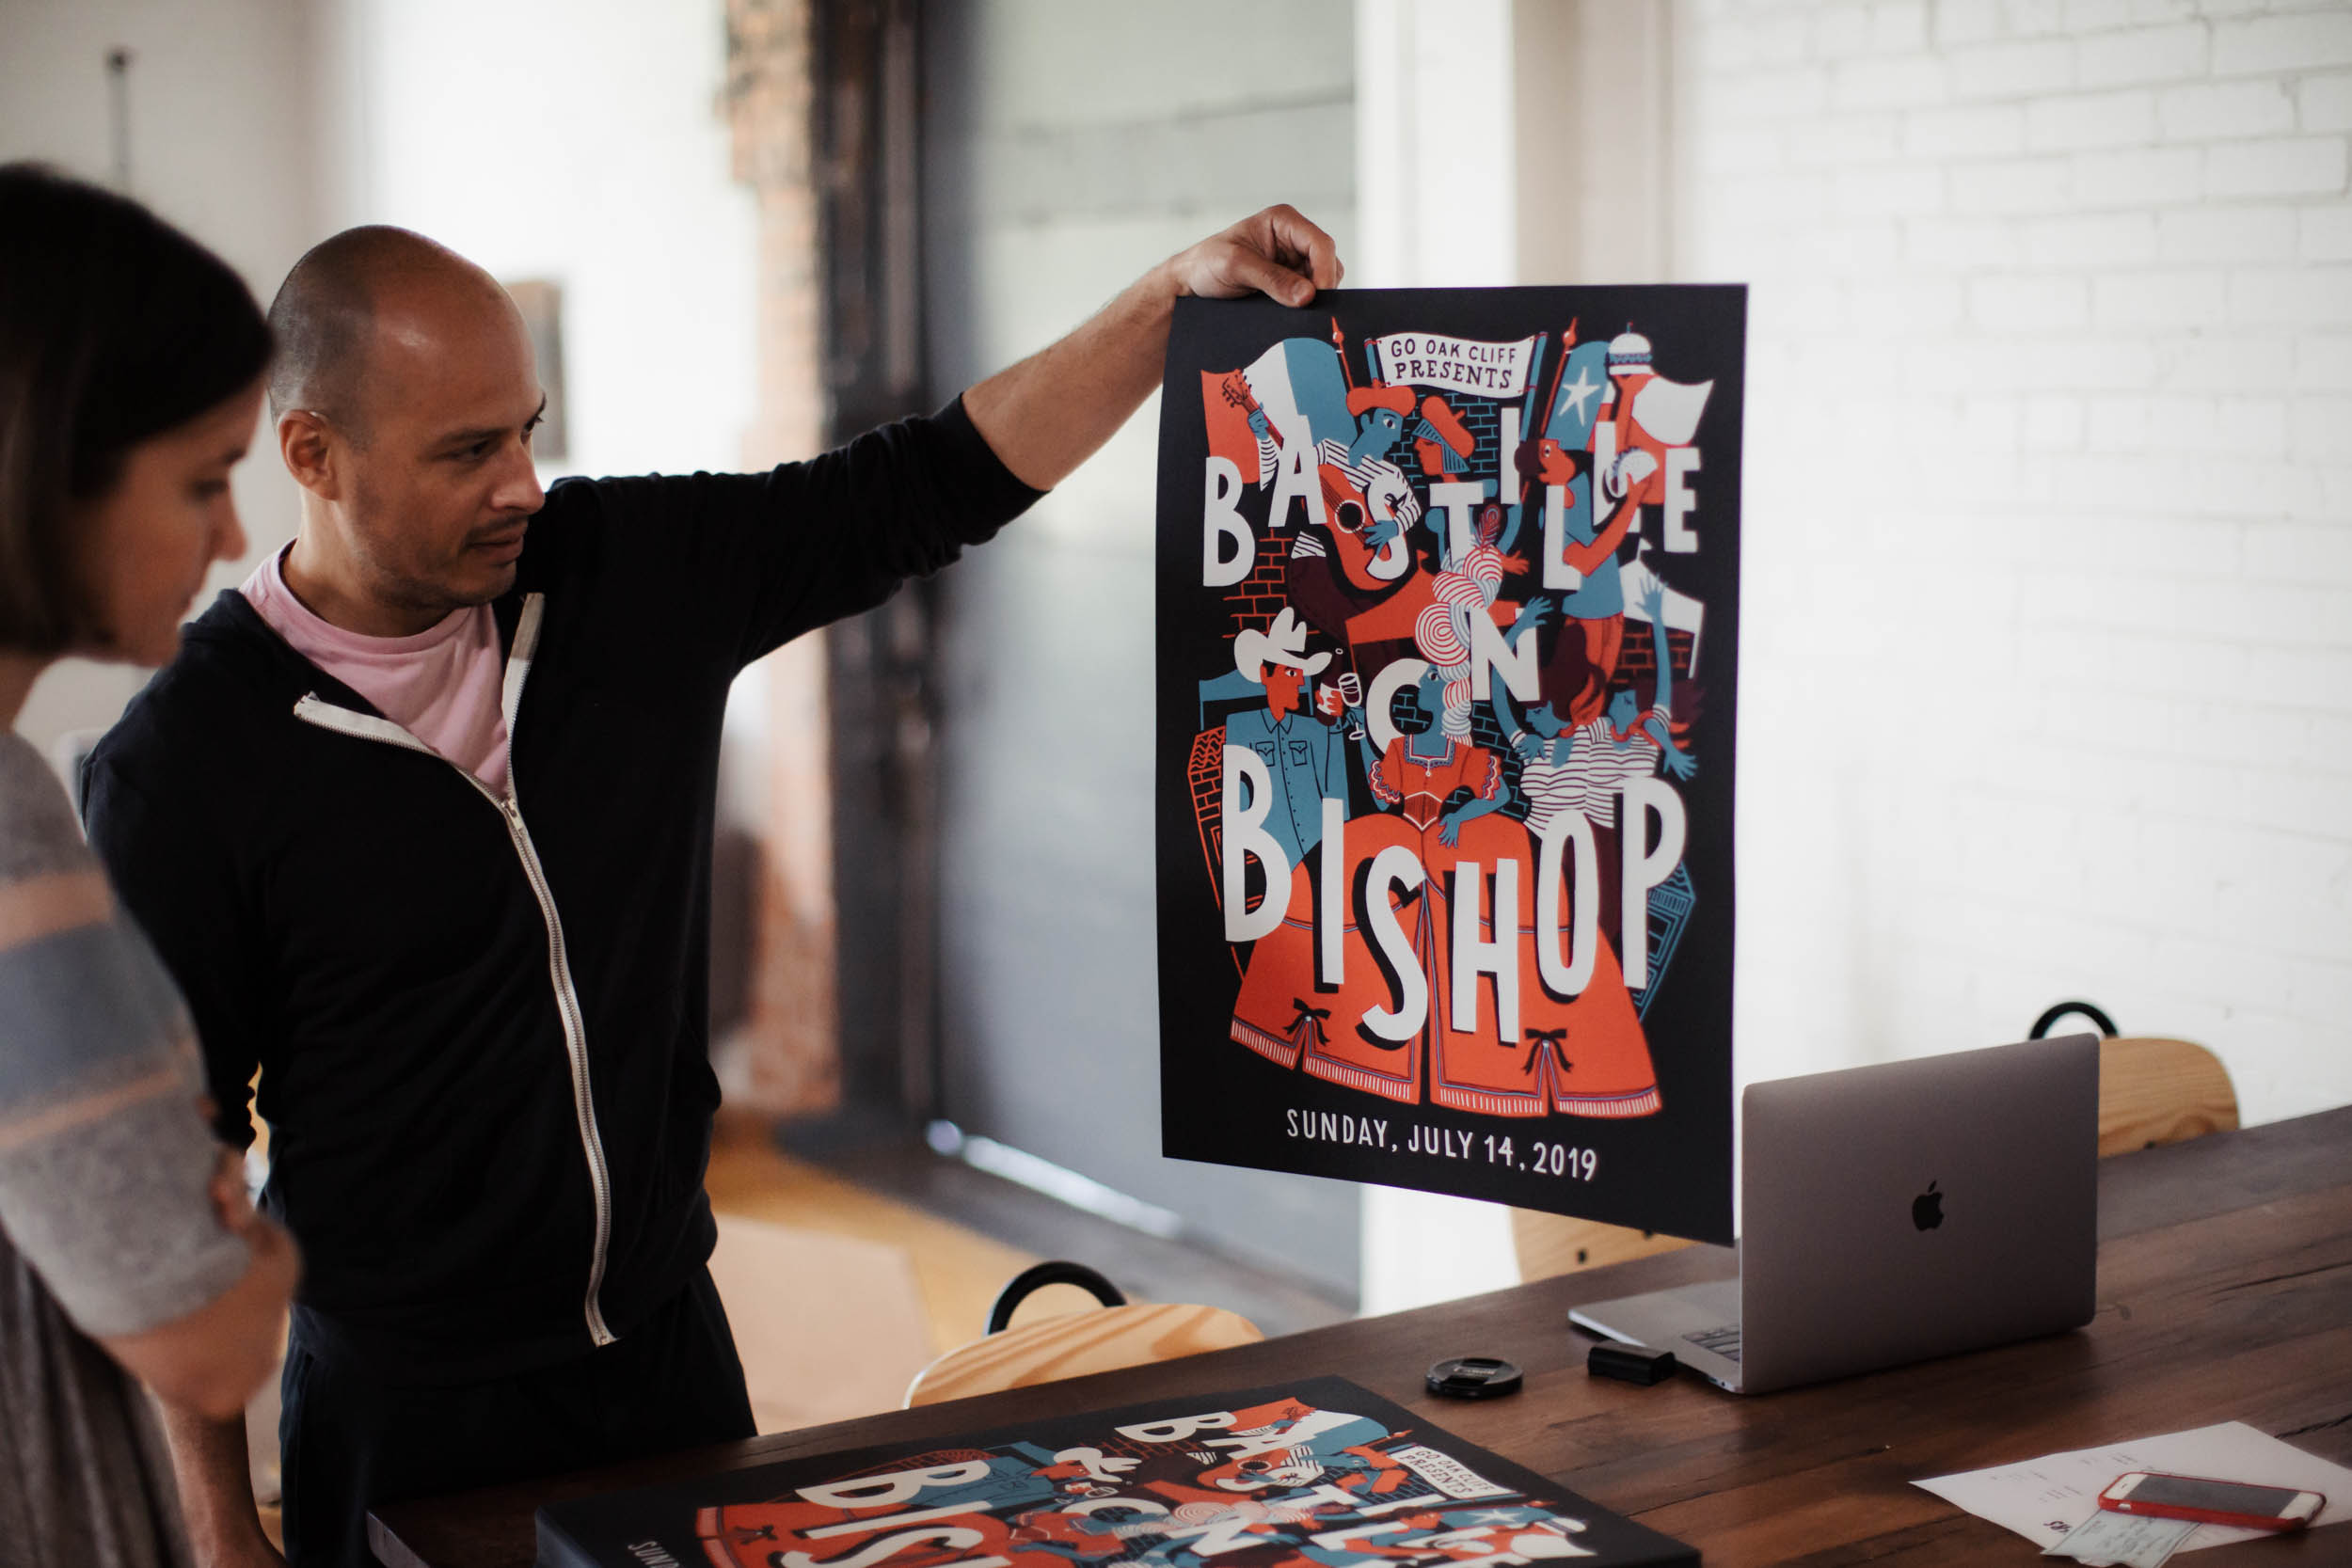 Bastille Posters - Available now for $25 plus tax, while supplies last.